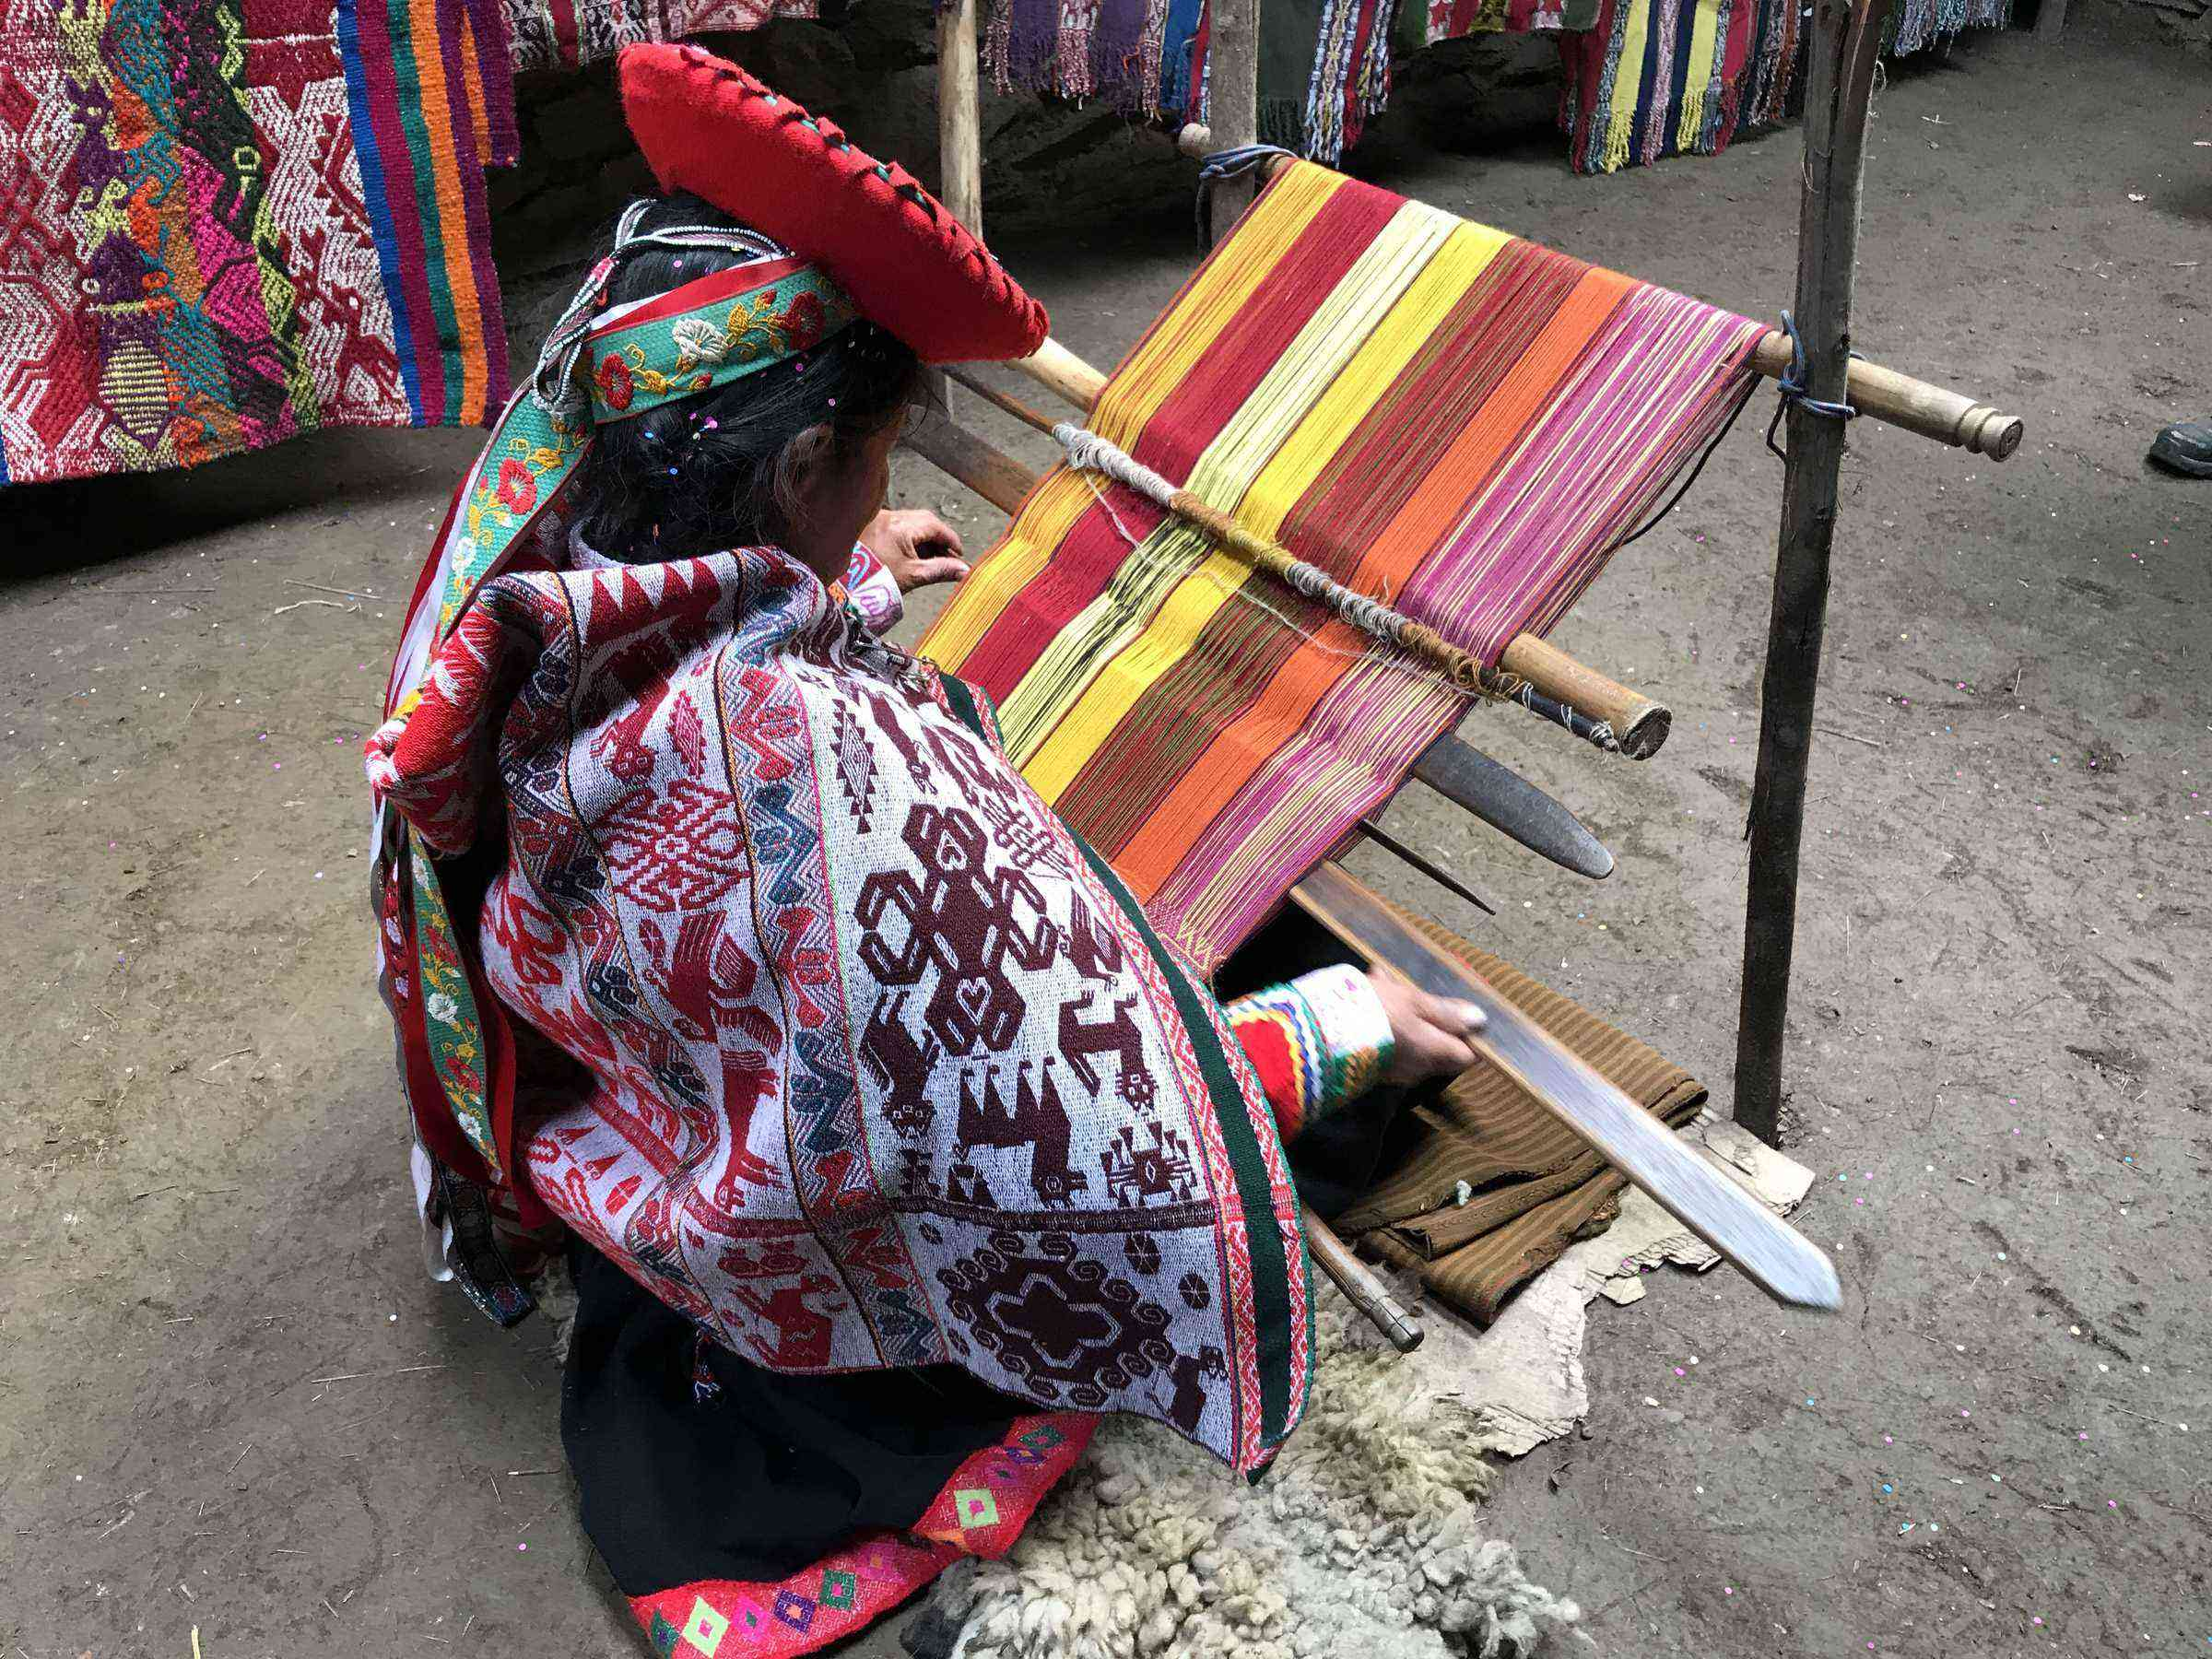 Struggling with Weaving, Ende Women Keep Cultural Preserve